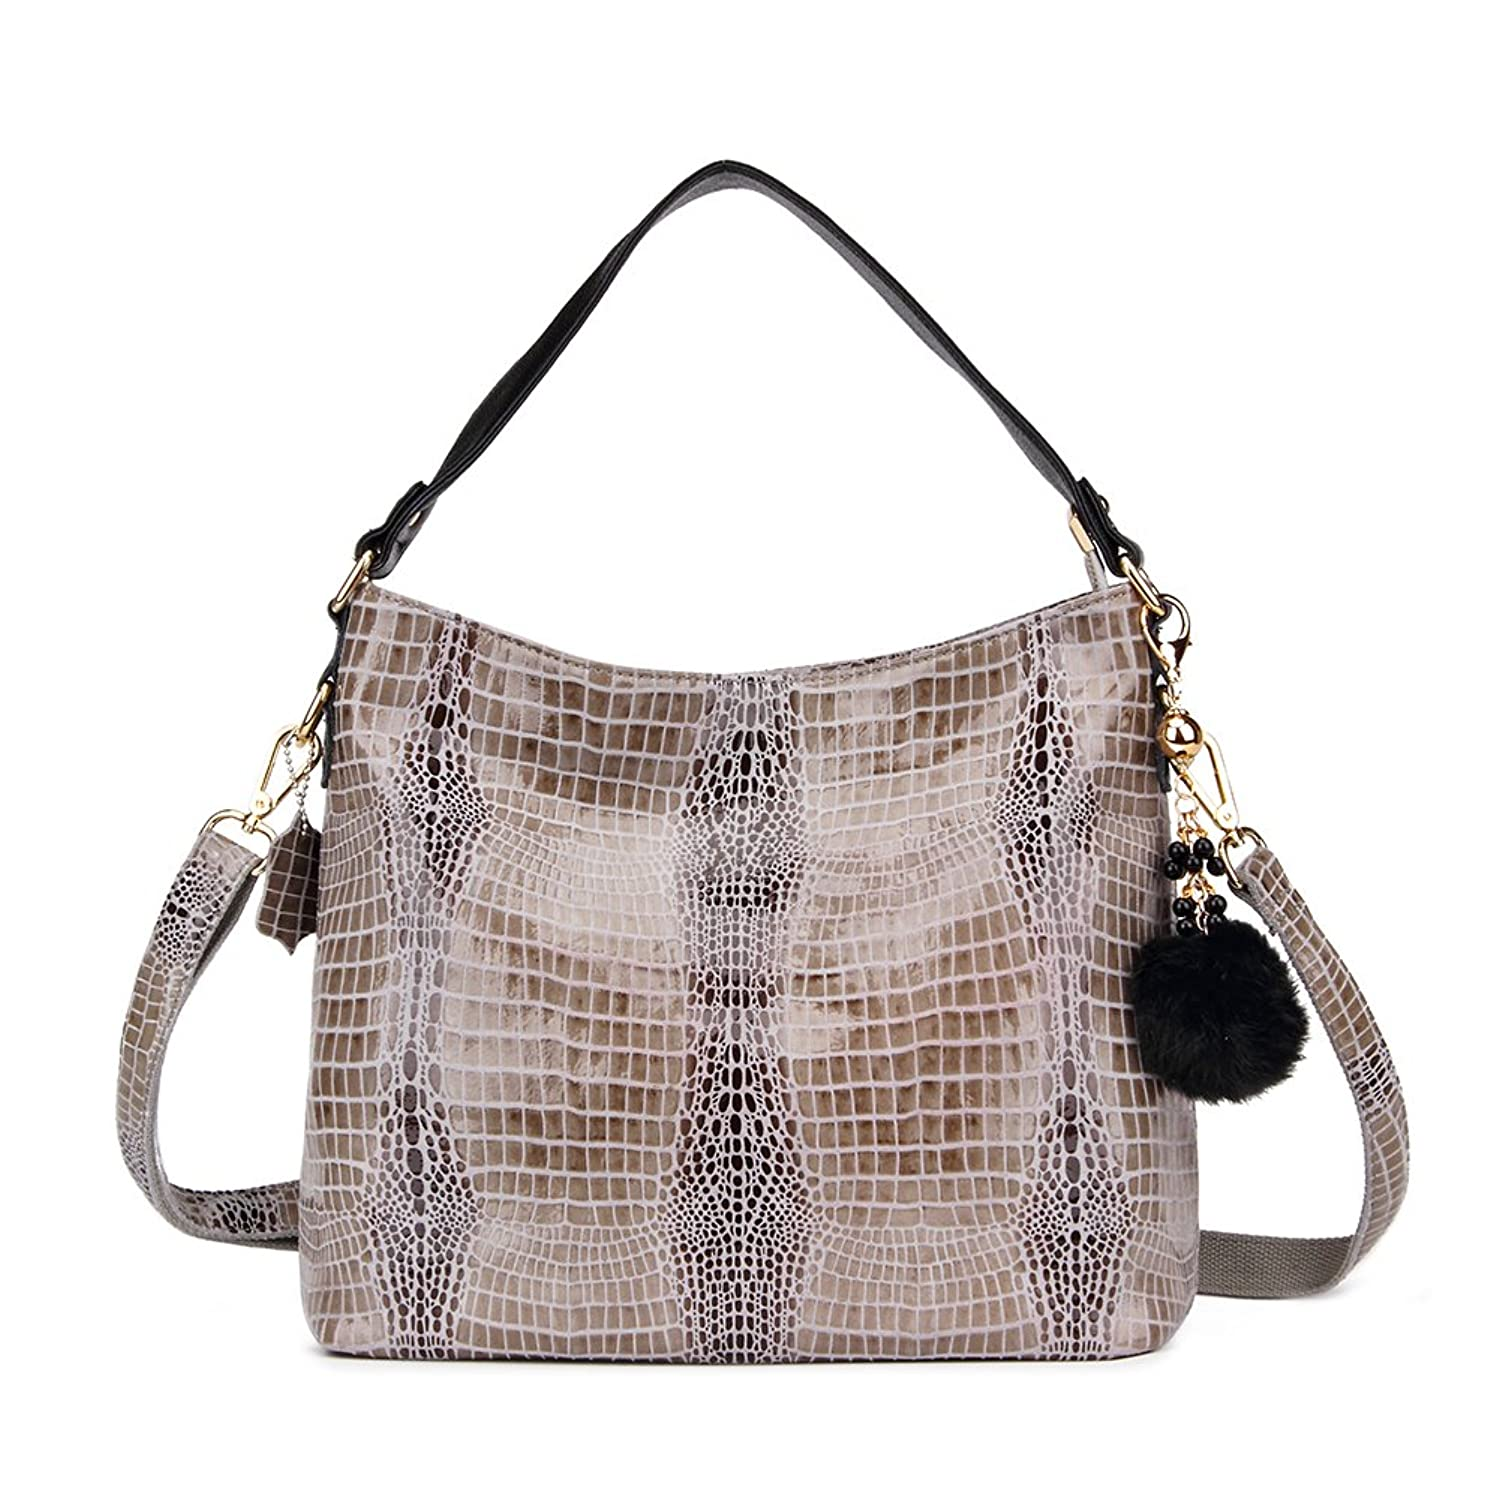 Realer Soft Leather Ladies Handbags Tote Bags with Zipper for Women Cross Over Shoulder Bags